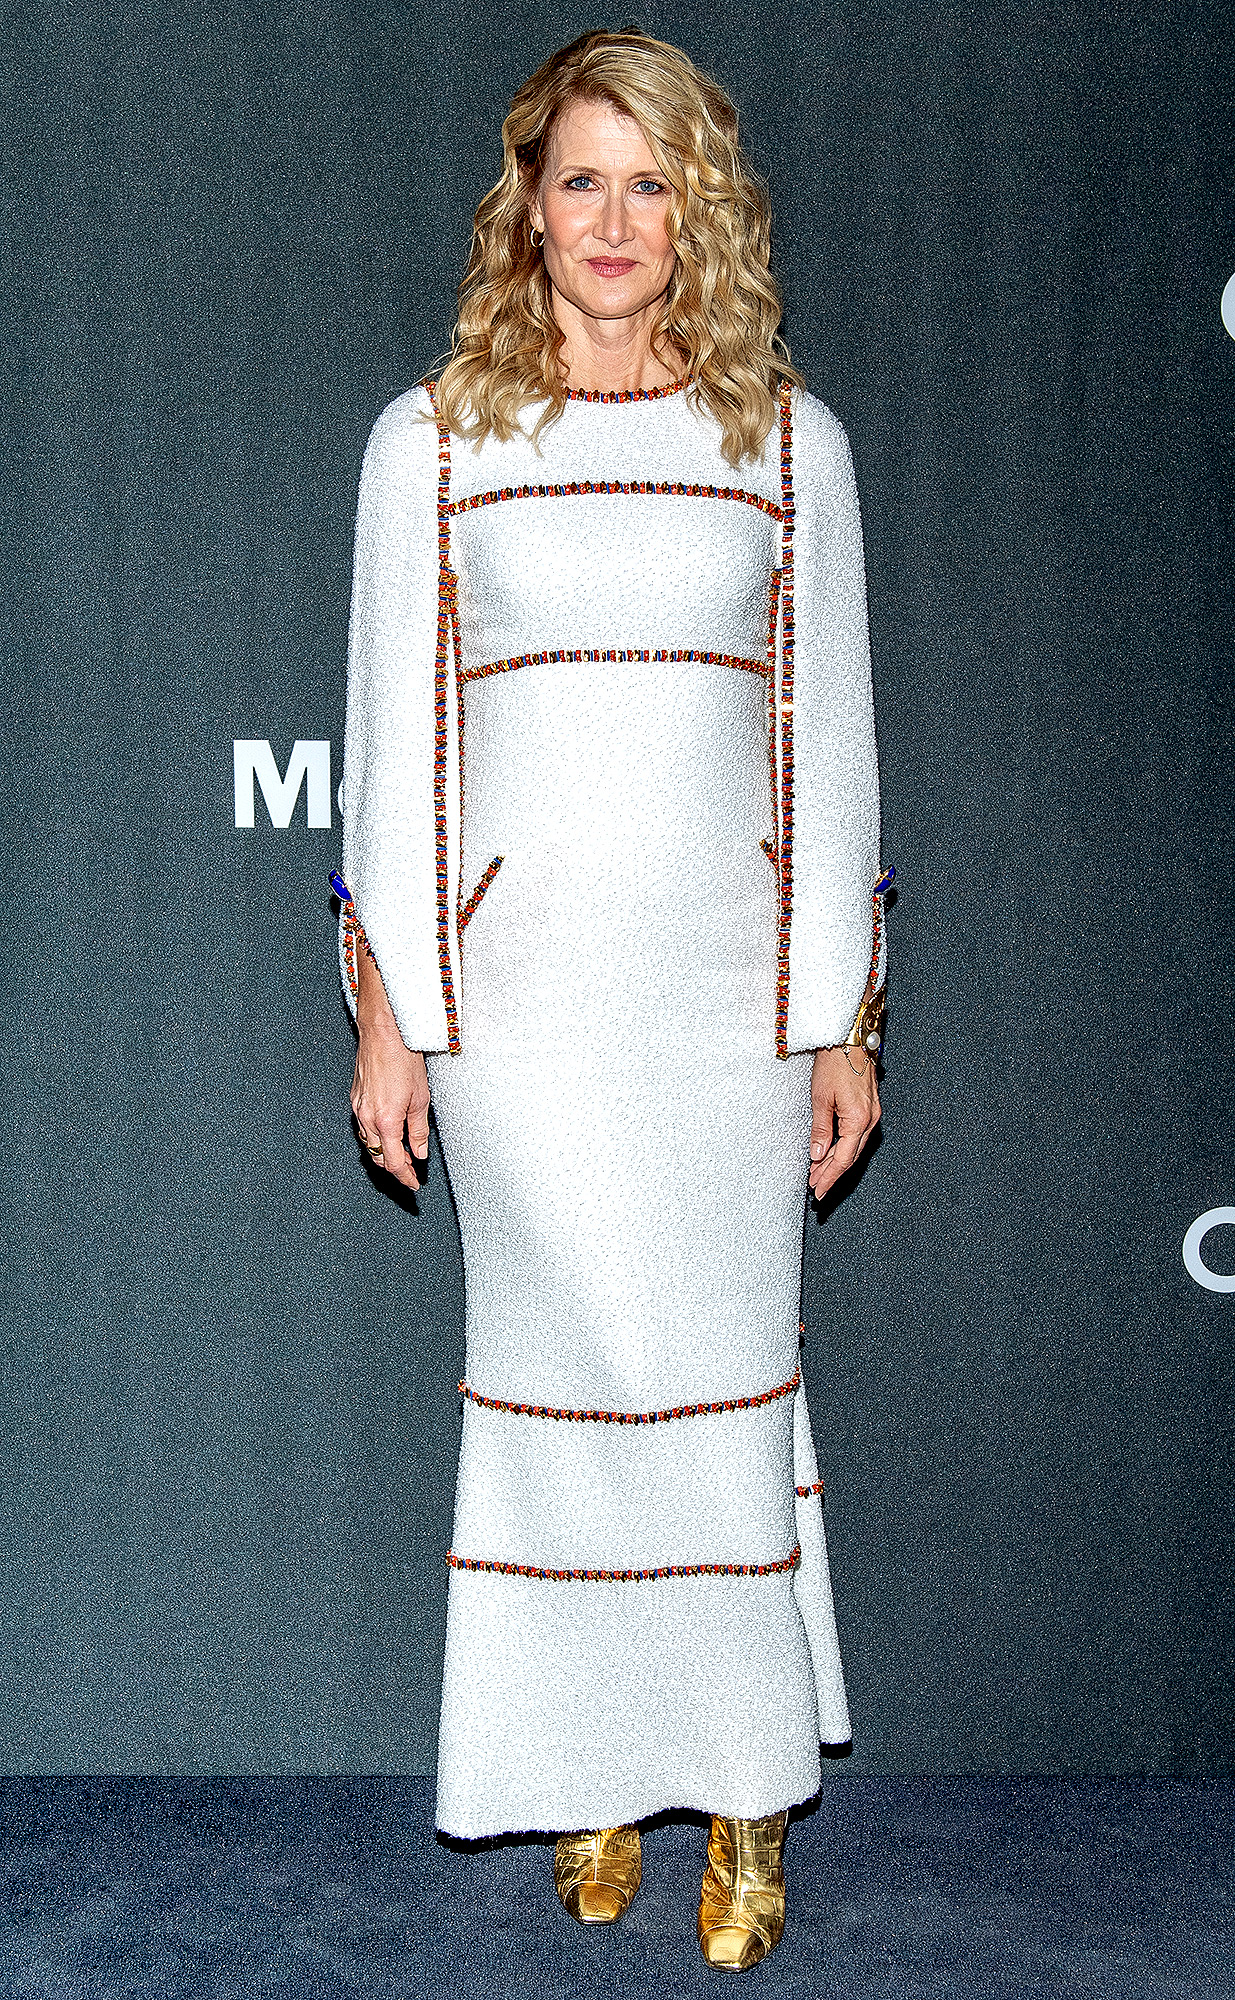 Laura Dern attends the 2019 Museum Of Modern Art Film Benefit: A Tribute To Laura Dern